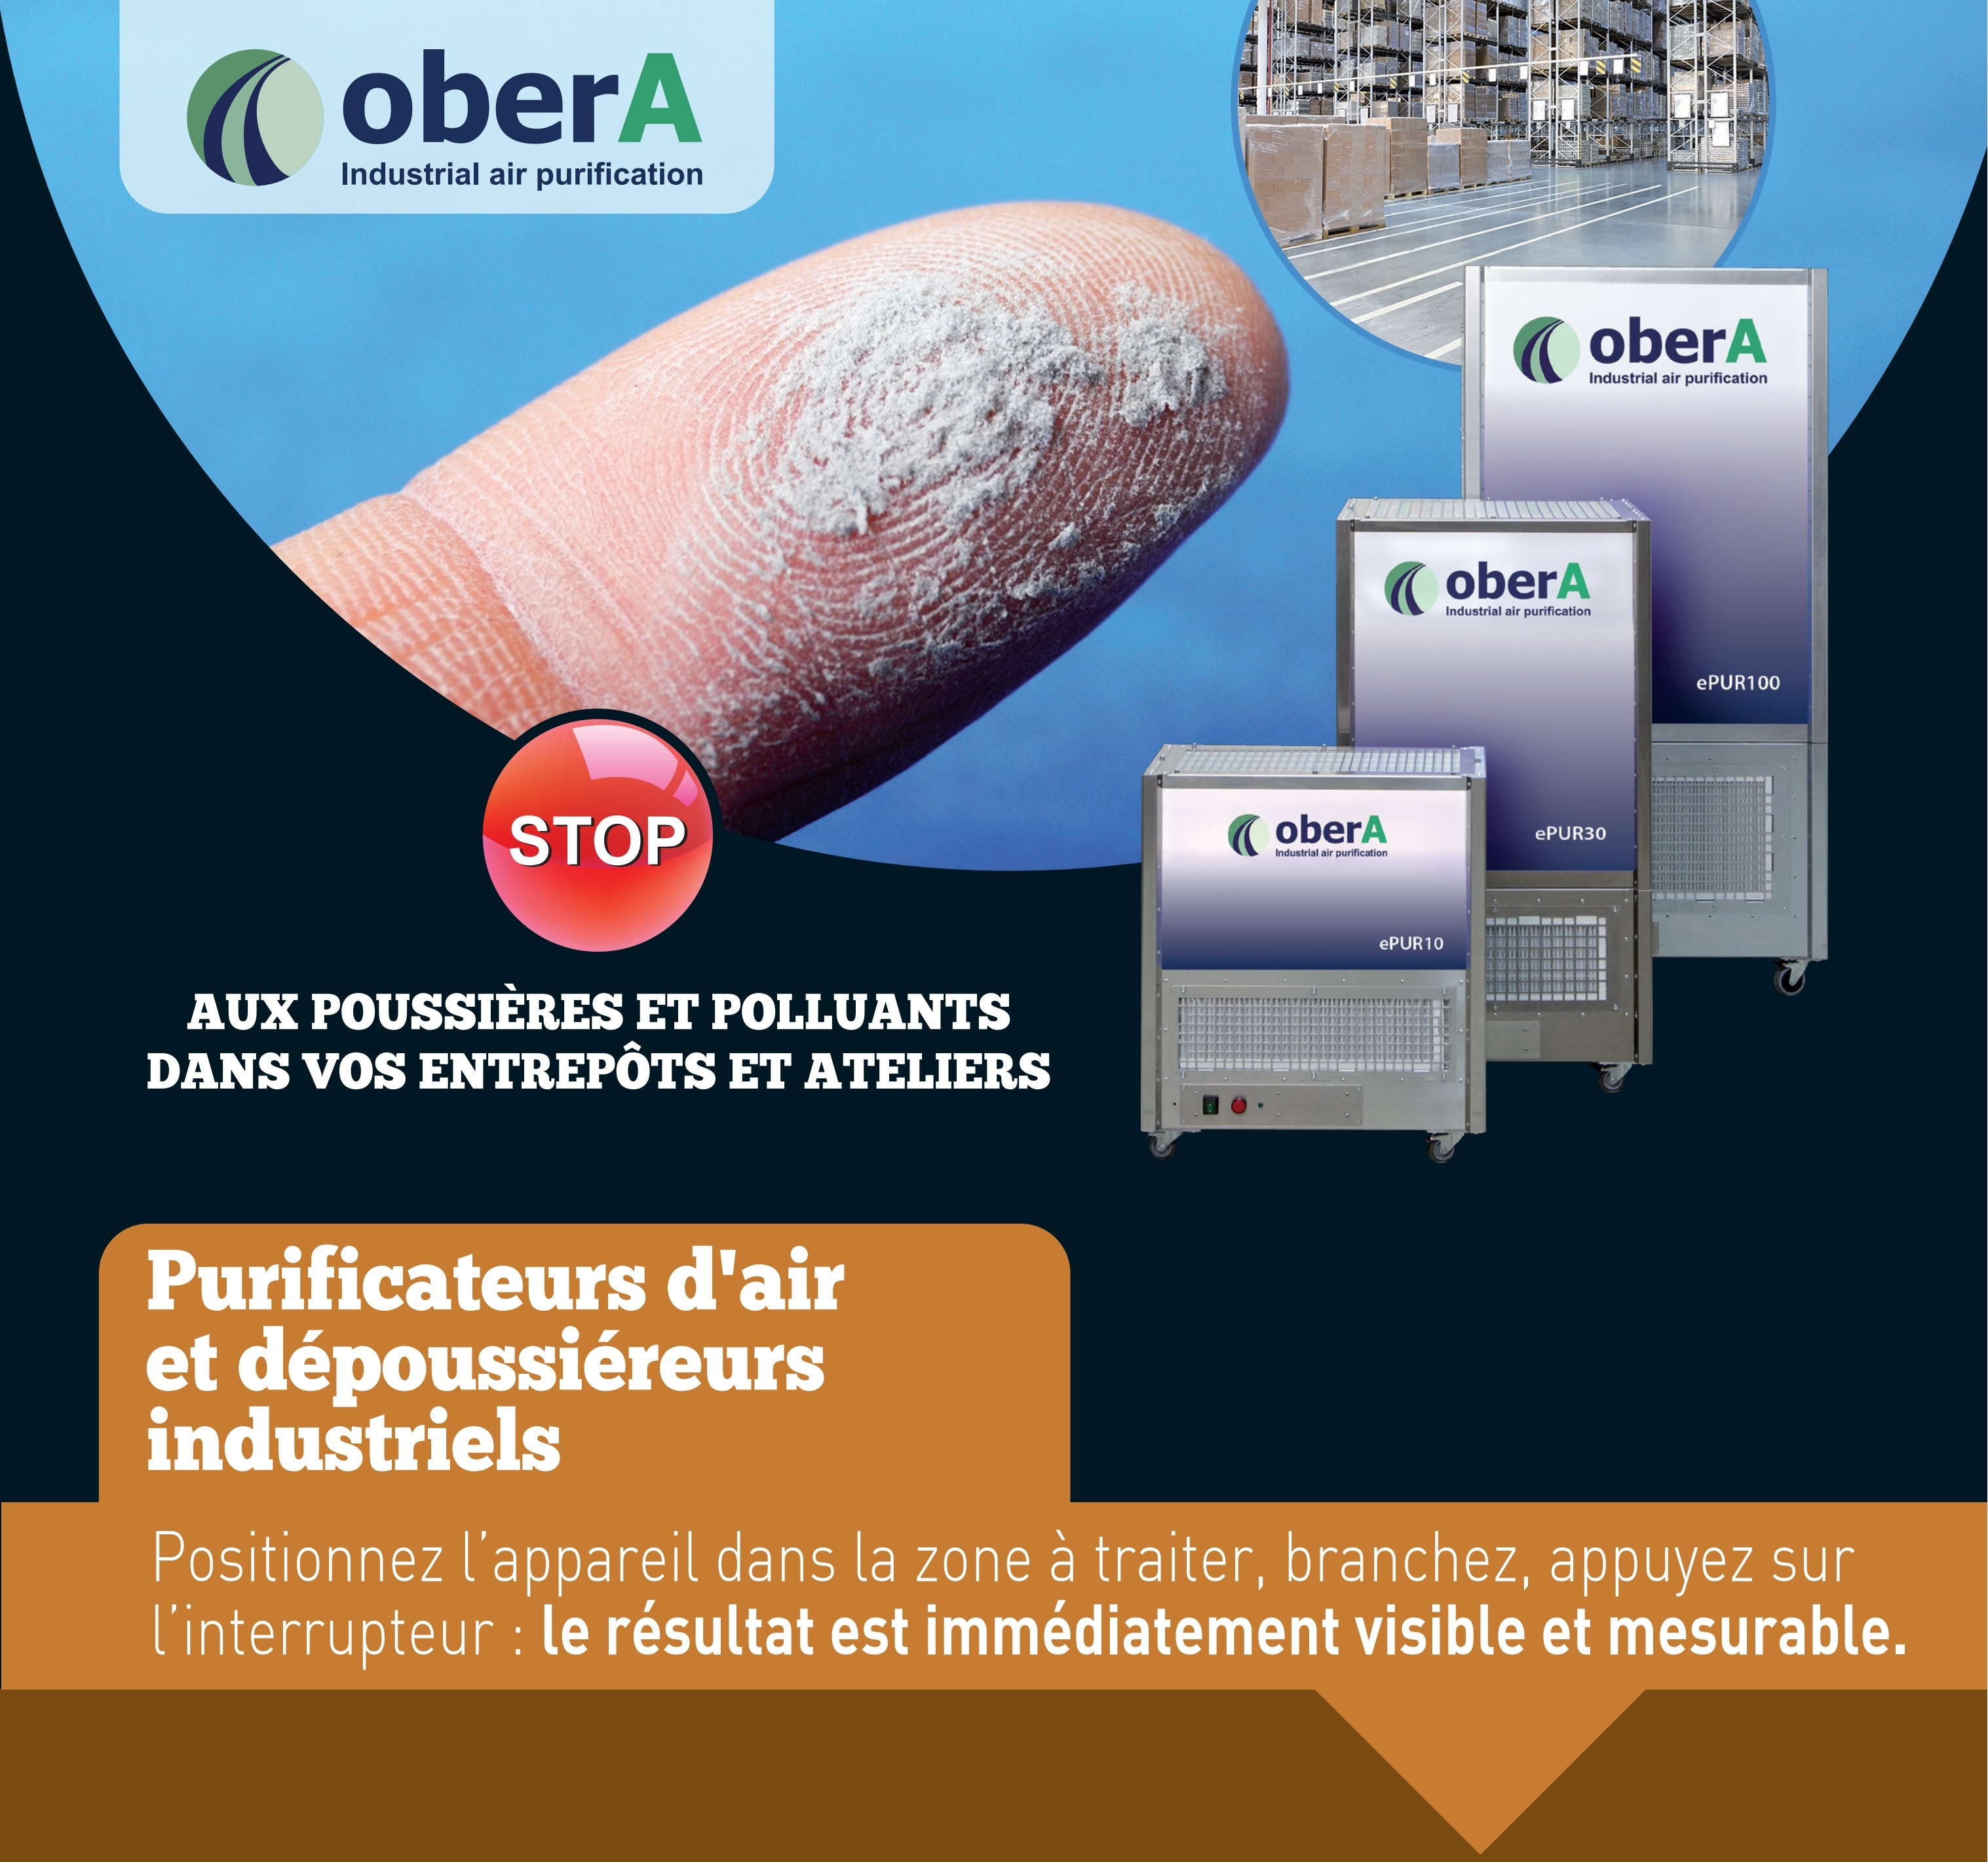 photo - OberA Industrial air purification